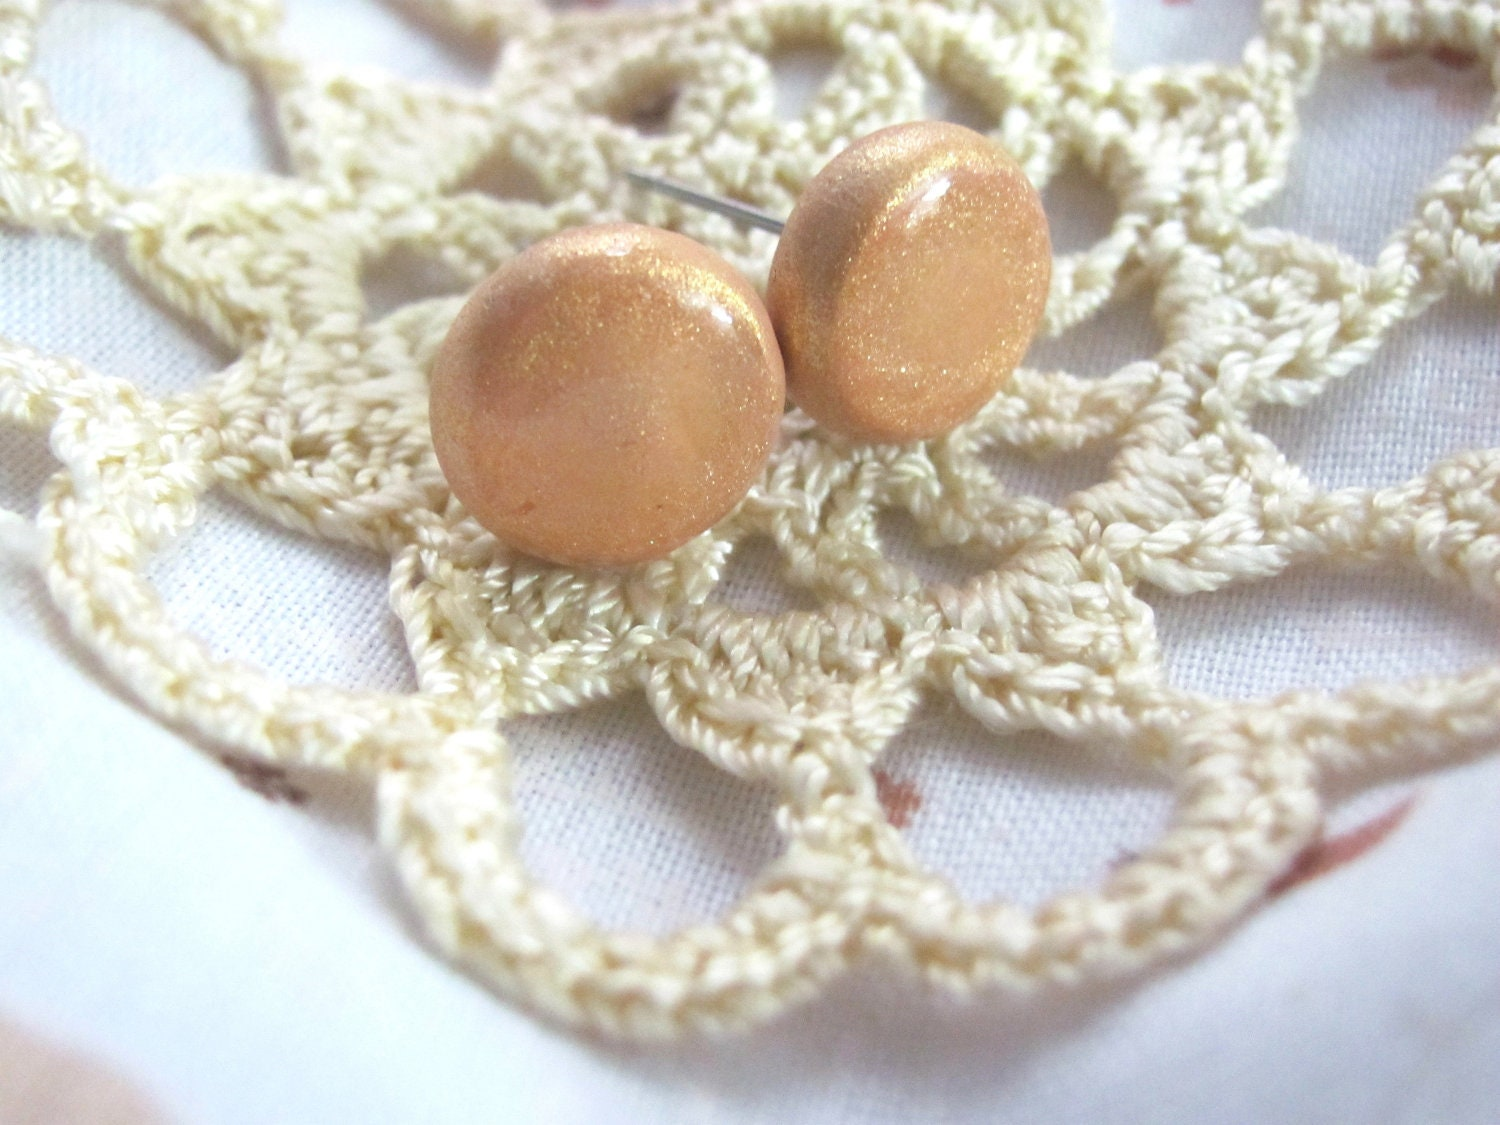 Yellow Raspberry - A pair of round stud earrings